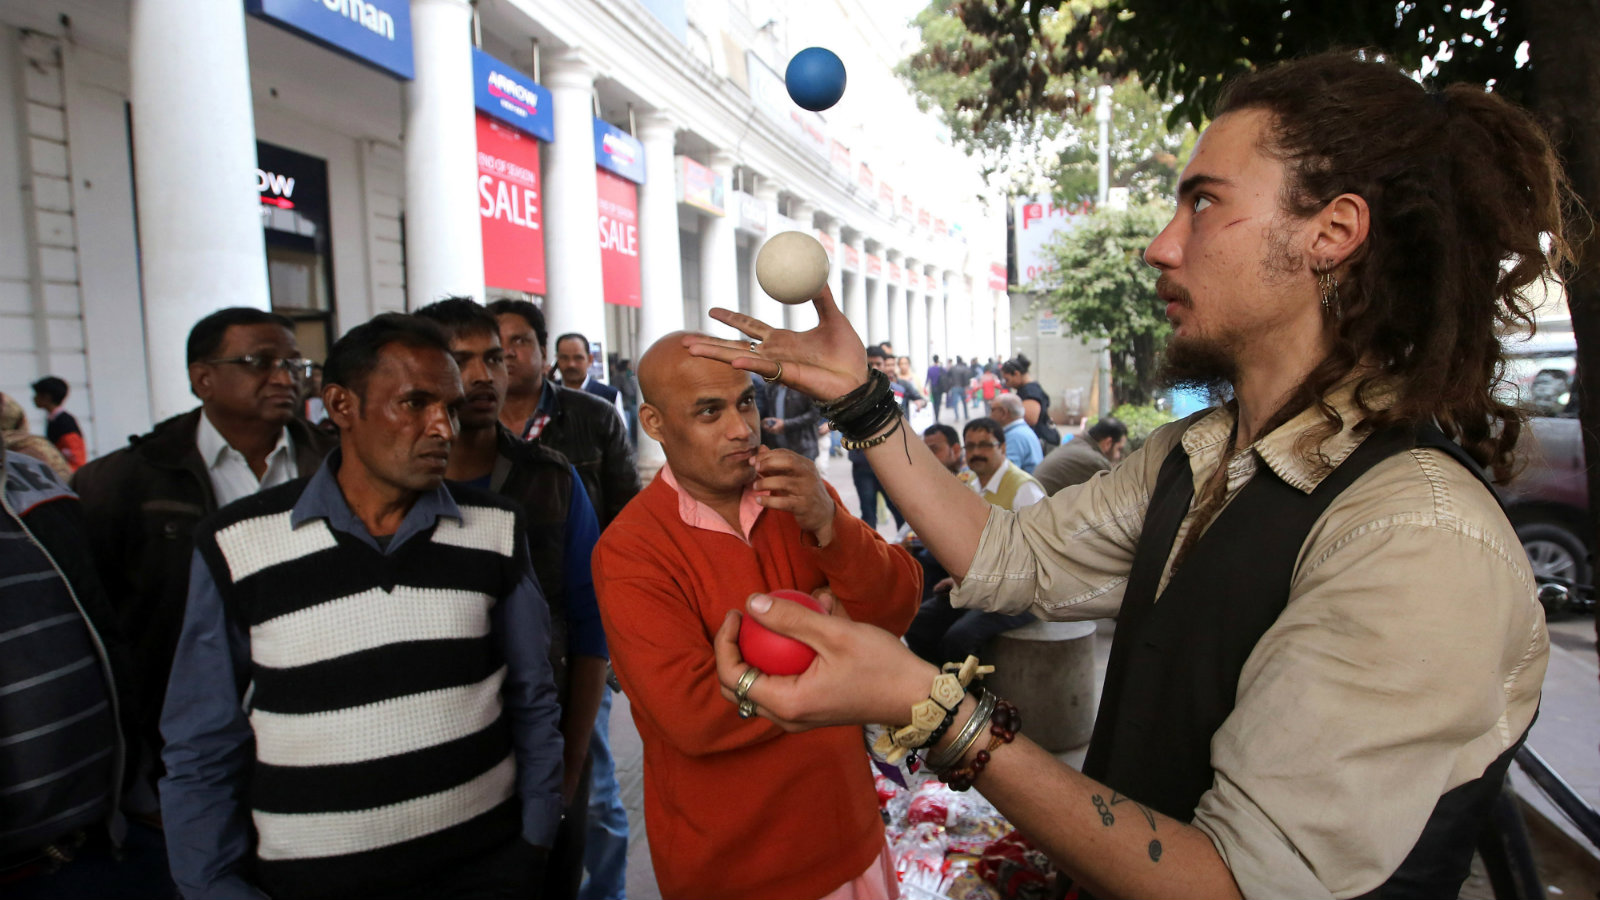 A man, who identifies himself as Spanish citizen named Remo, juggles balls purportedly to collect money to fly back to his home country, at Connaught place in New Delhi, India, 24 December 2016. According to the man, he arrived in India on 28 November from Barcelona, Spain, where his money was stolen from New Delhi Railways Station. For the last few days he has been juggling balls to collect money for his return ticket.